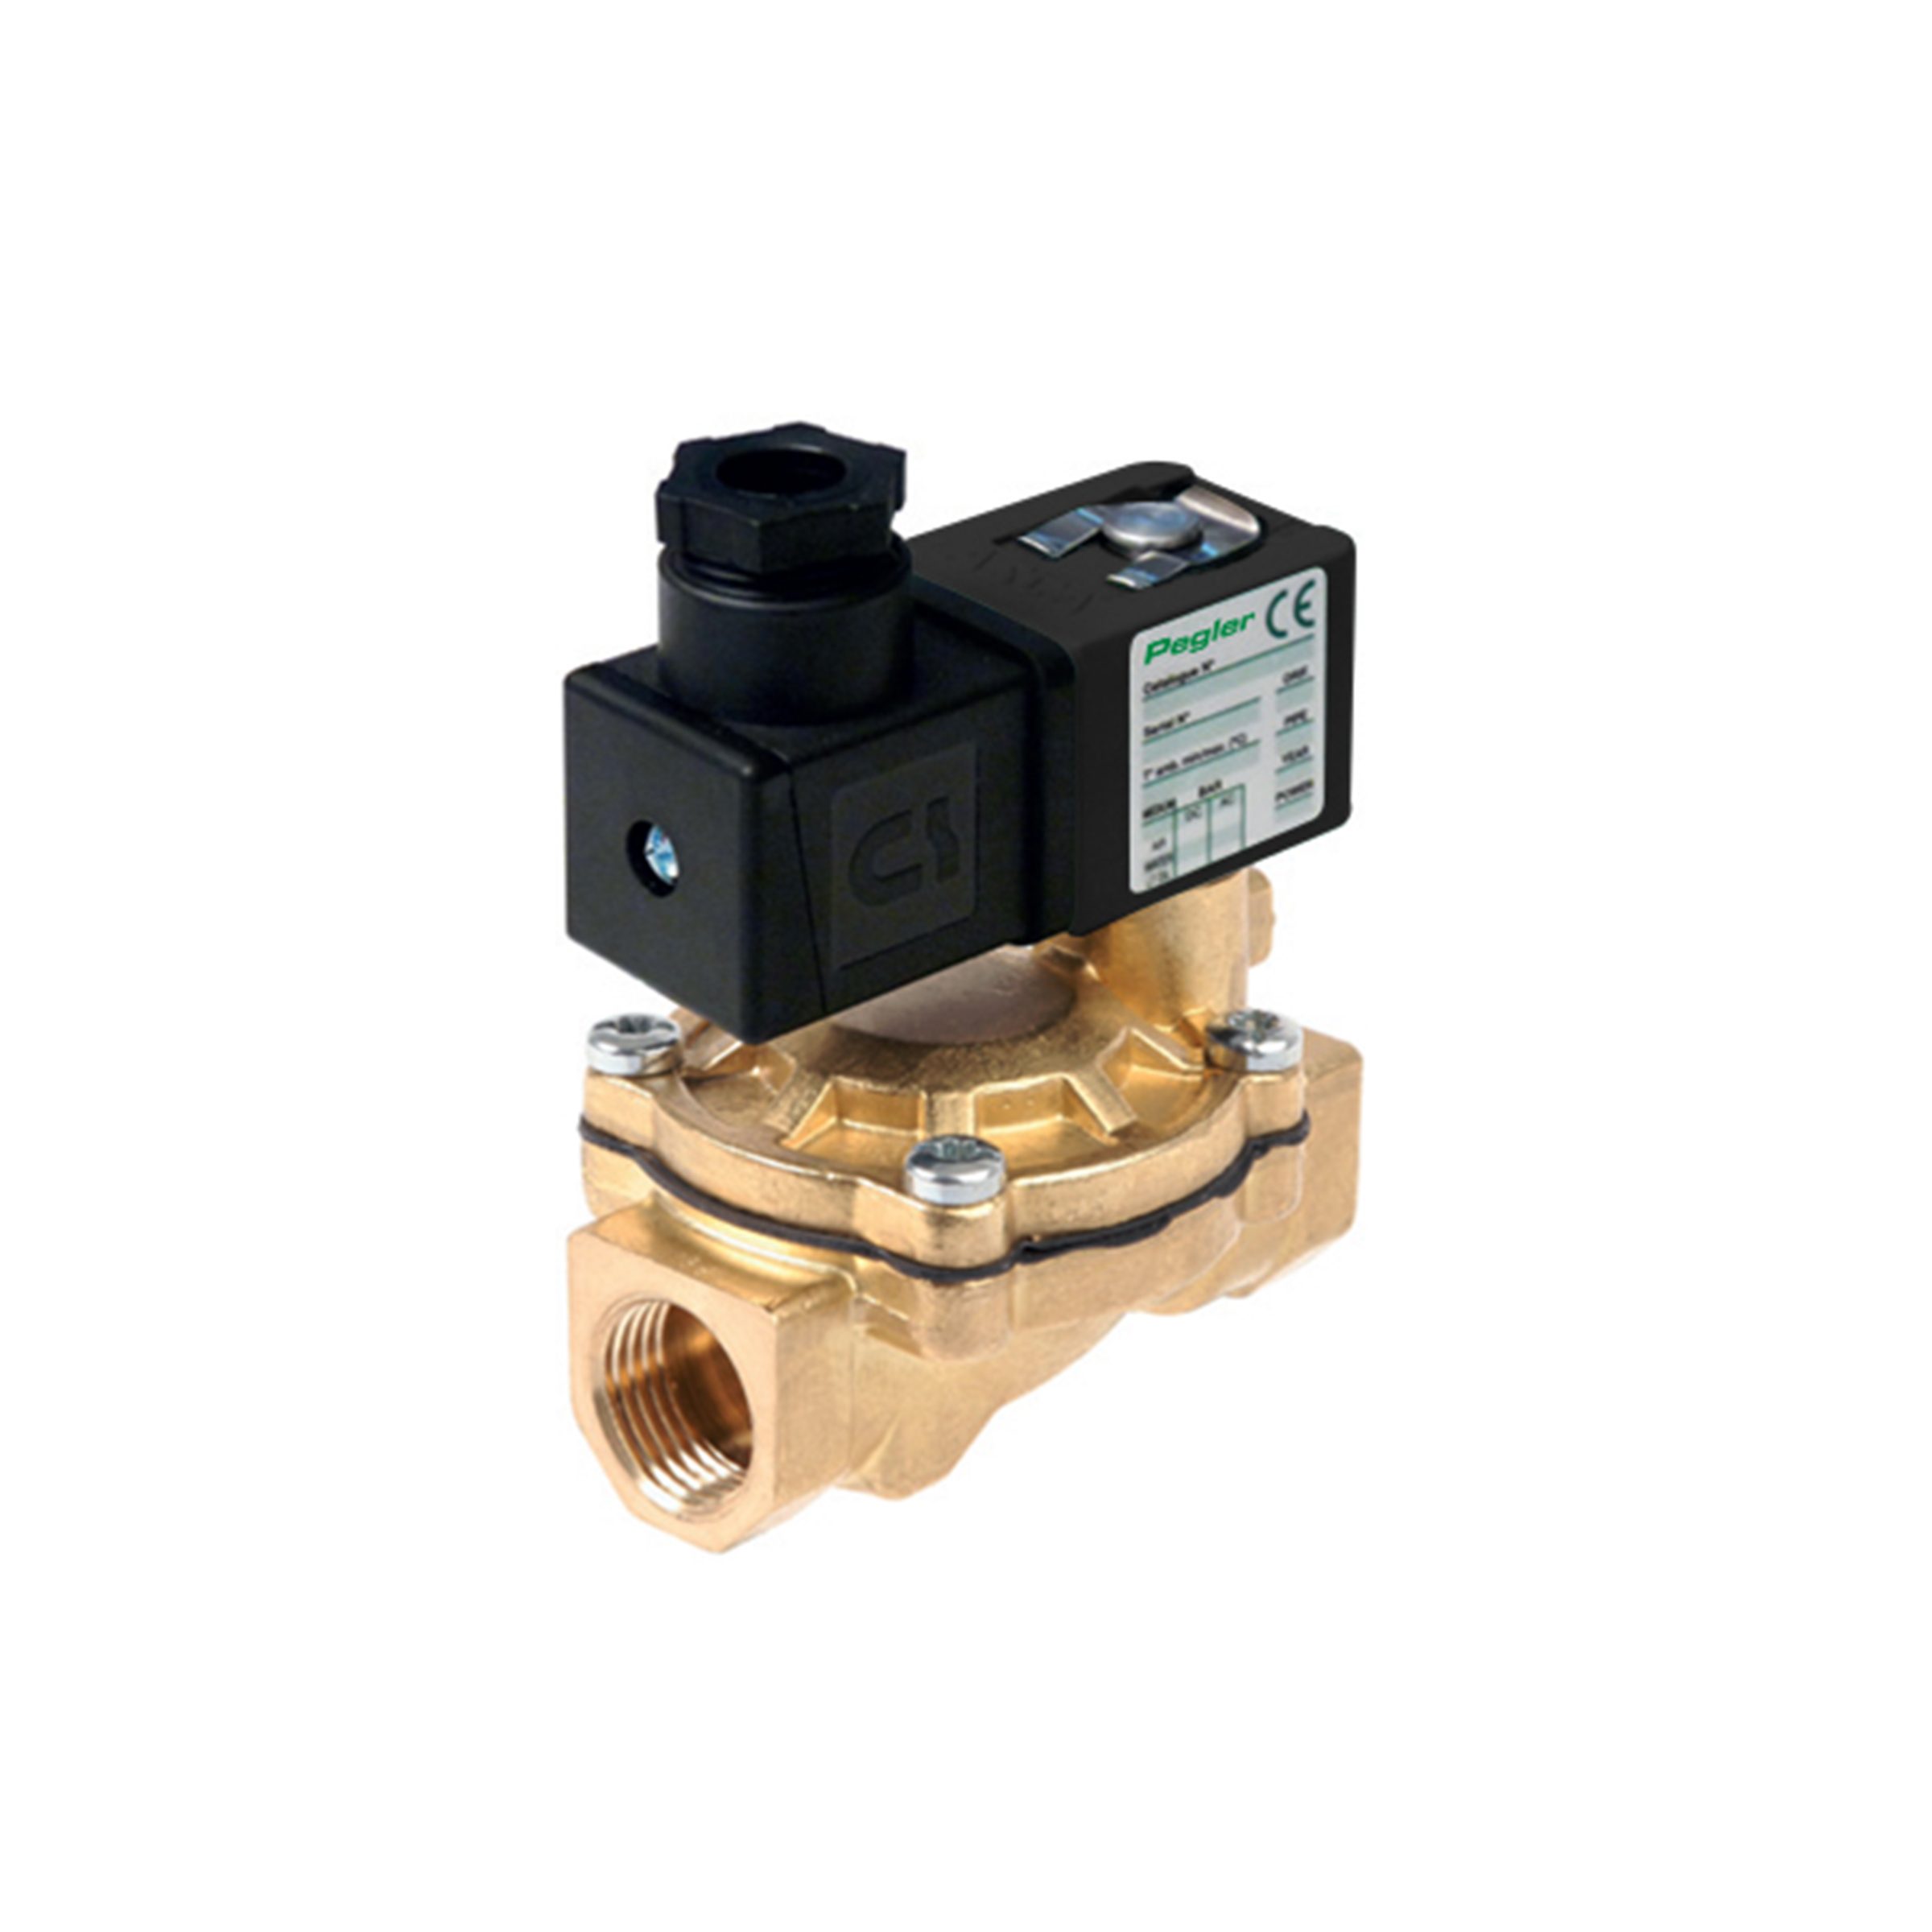 image for Solenoid Valves